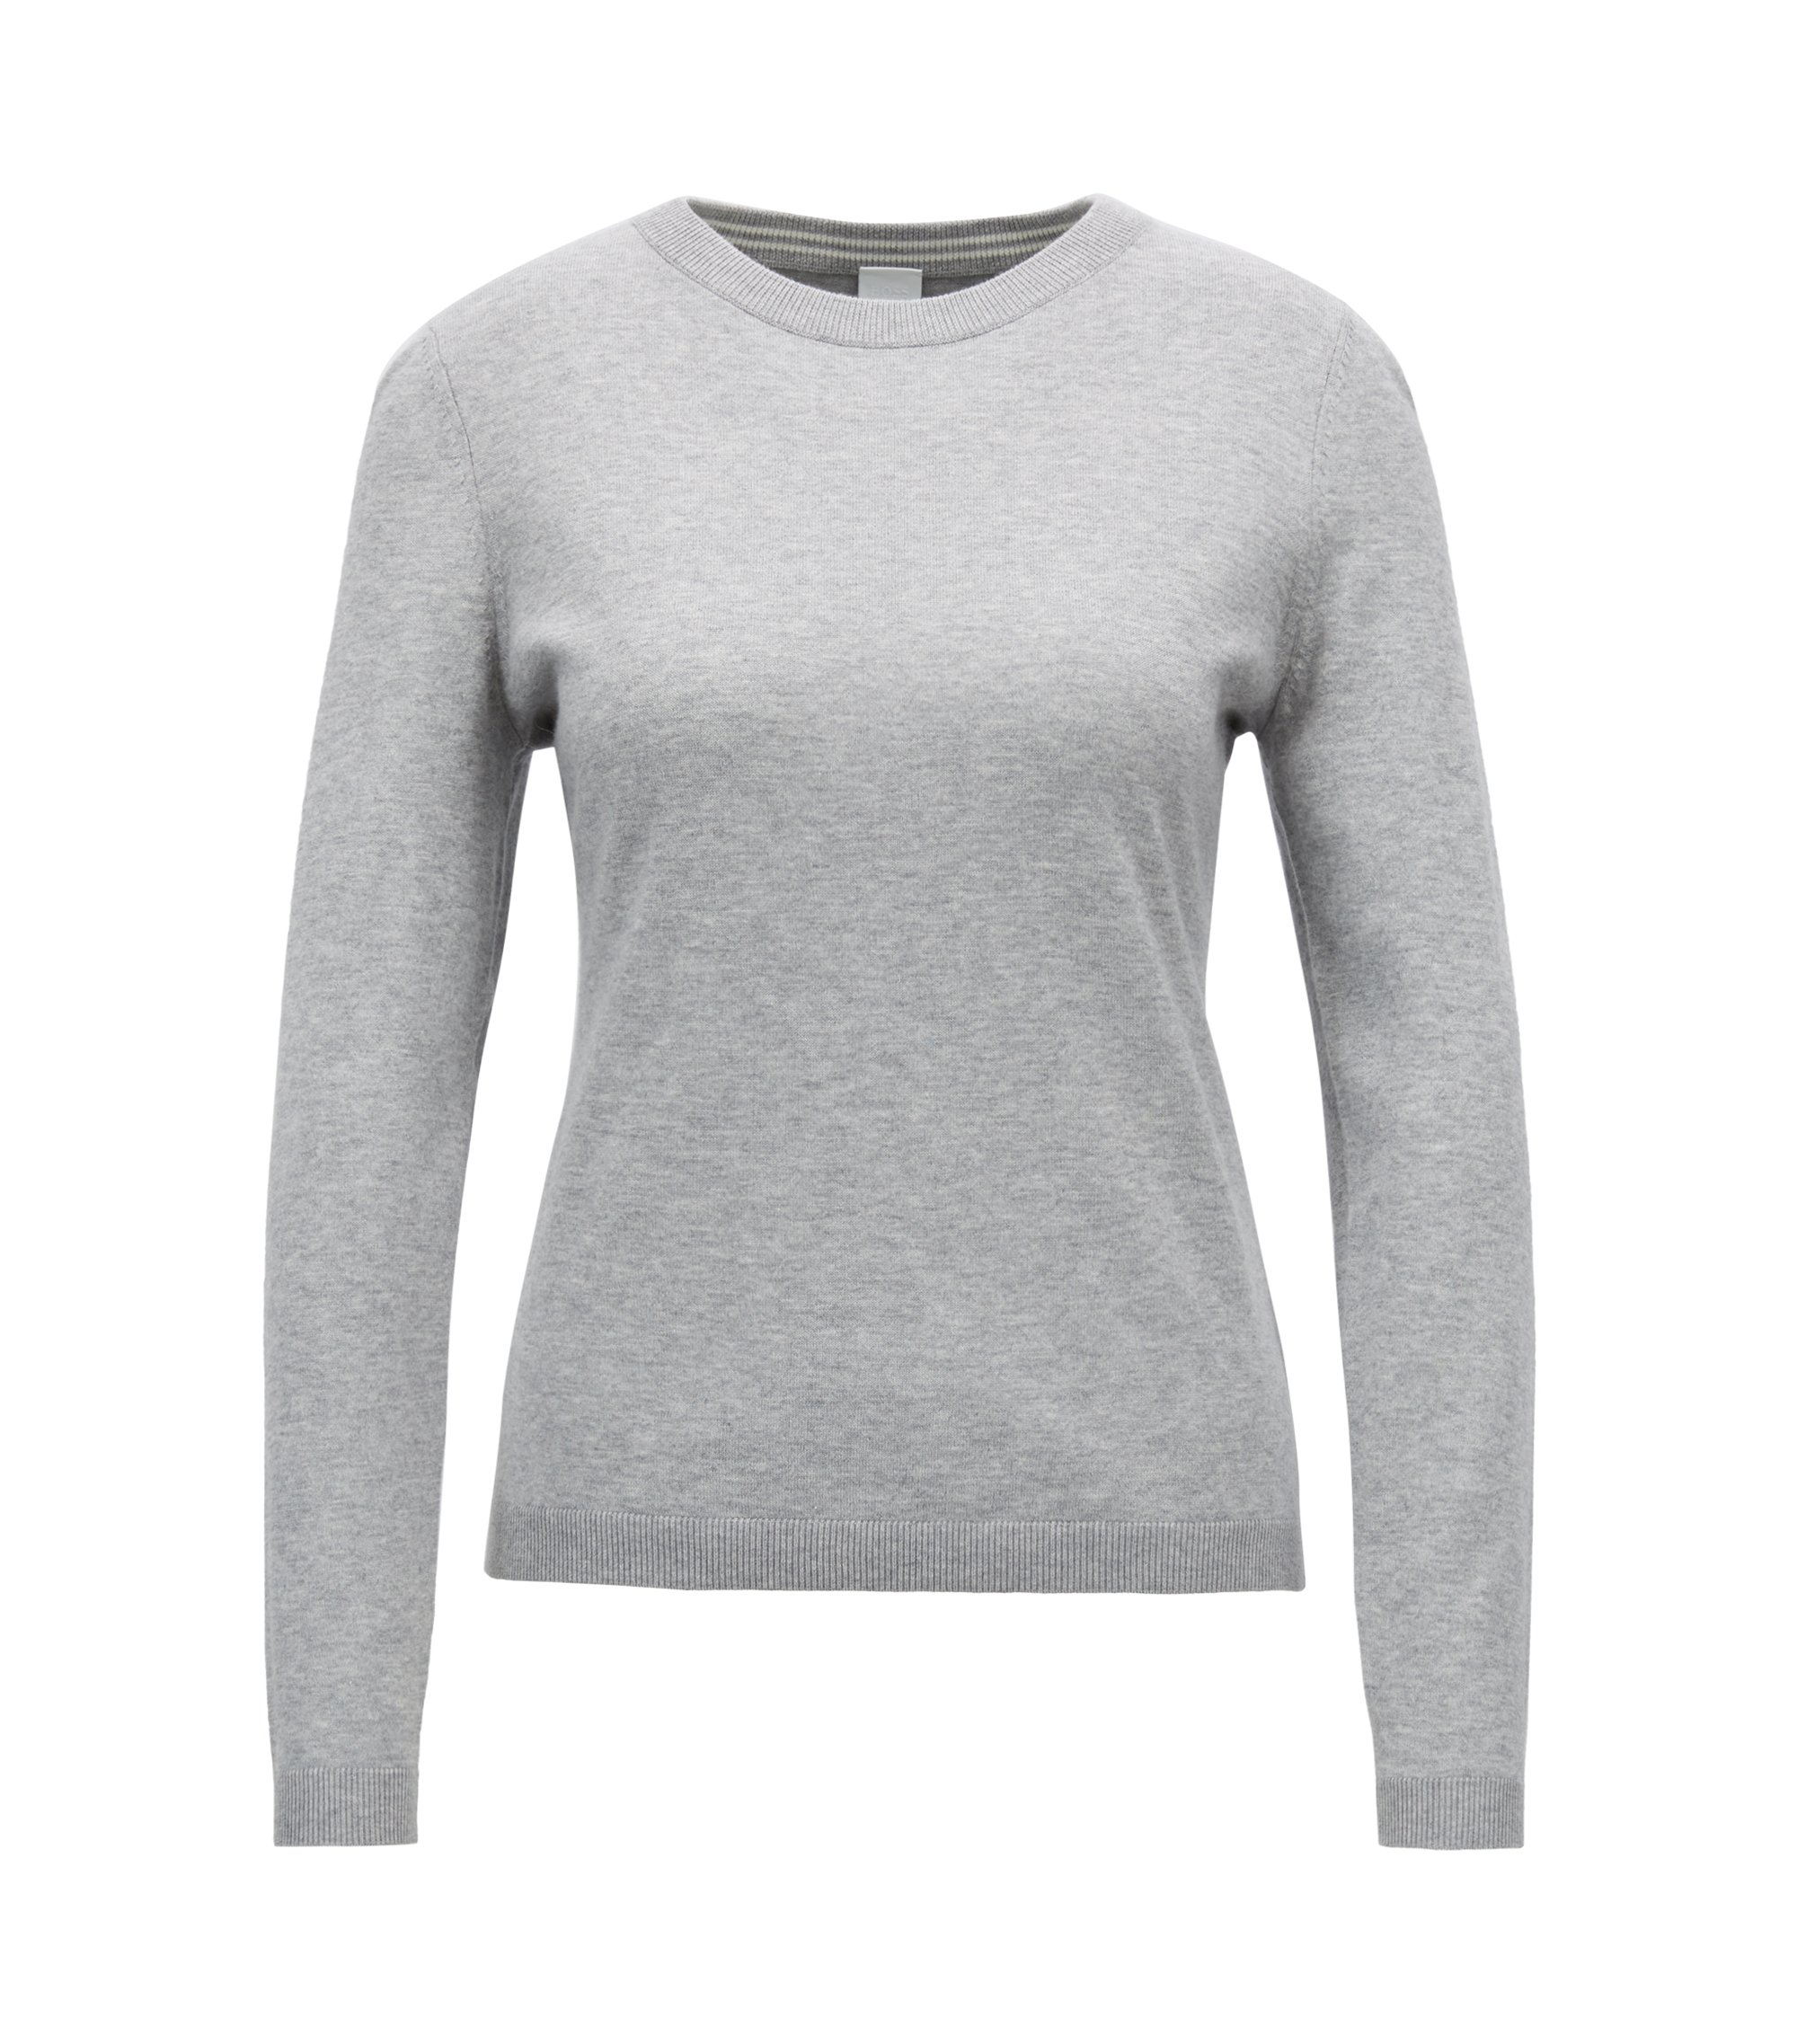 Slim-fit sweater in a premium cotton blend, Silver